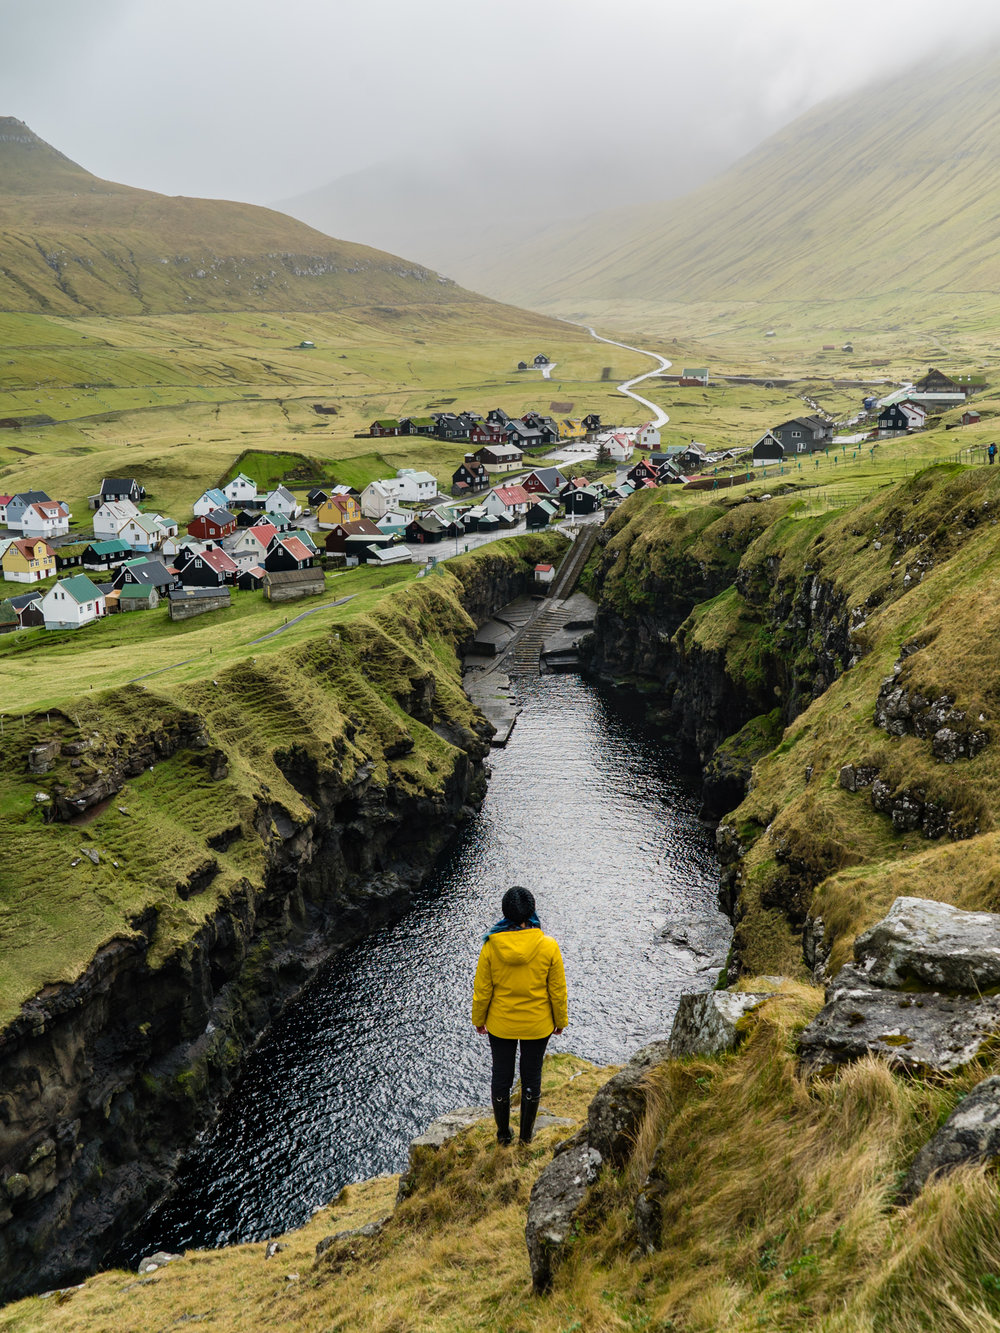 wrenee_faroe_islands-16.jpg